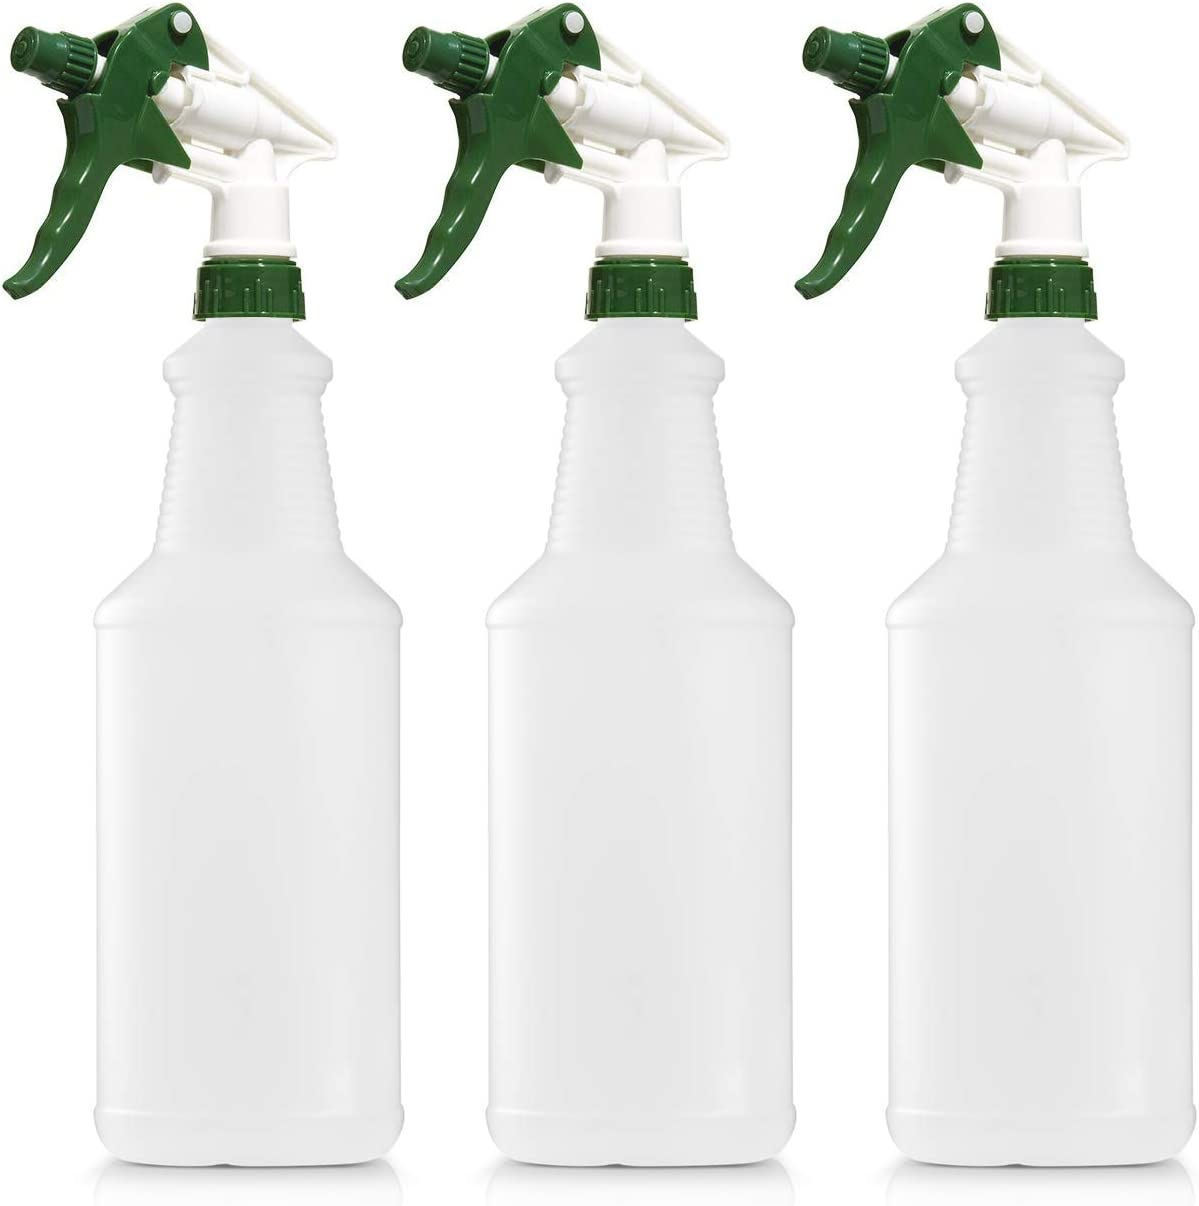 Empty Plastic Spray Bottle 32 Ounce, Professional Chemical Resistant with White-Green Sprayer for Chemical and Cleaning Solution, Heavy Duty, Adjustable Head Sprayer from Fine to Stream (Pack of 3): Automotive